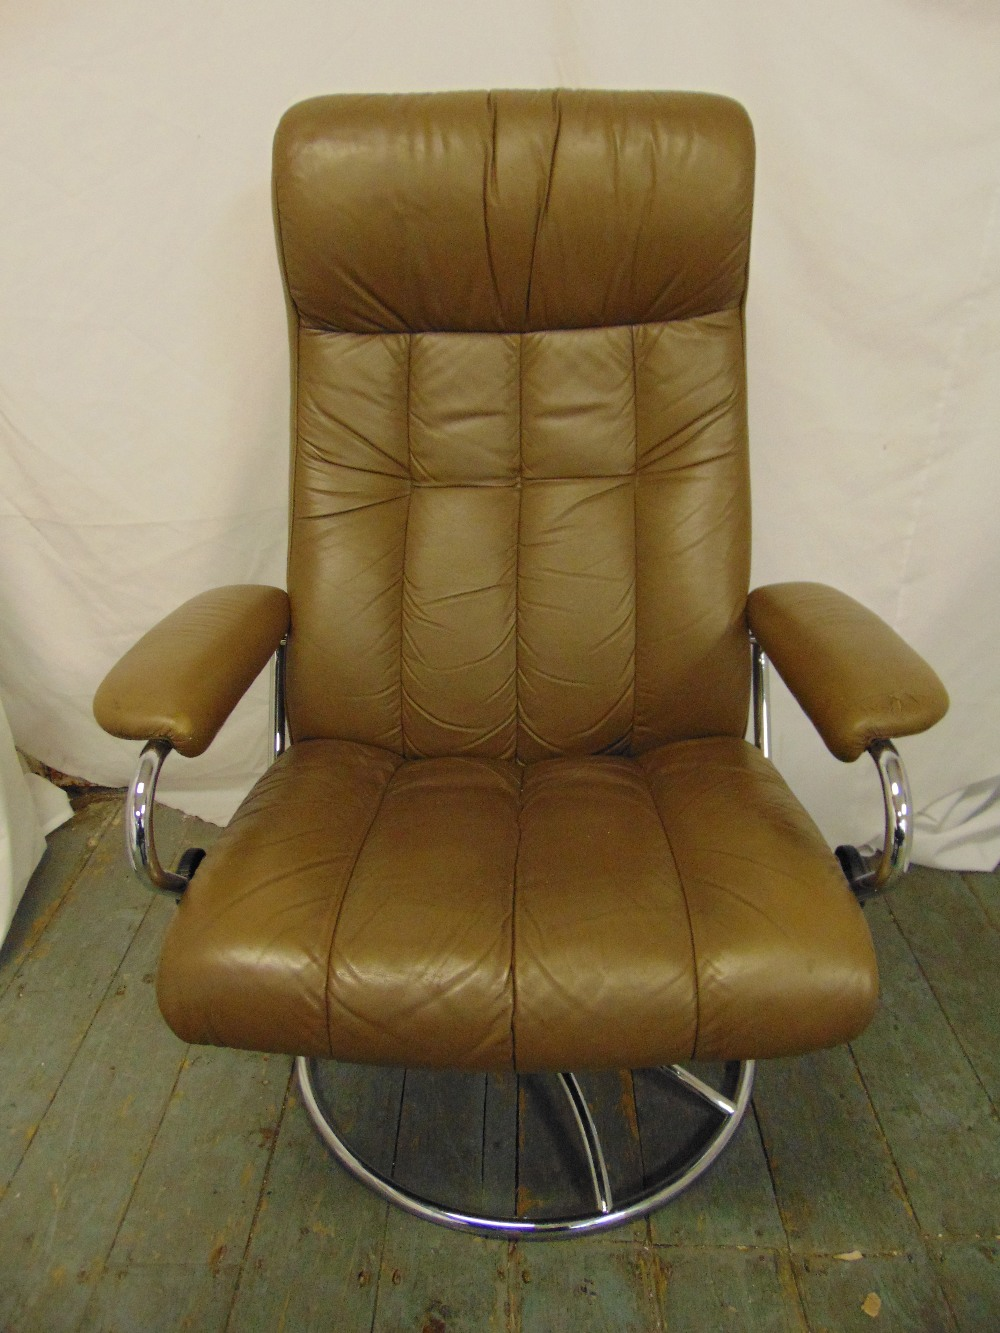 Lot 35 - A 1980s leather and chrome revolving armchair recliner